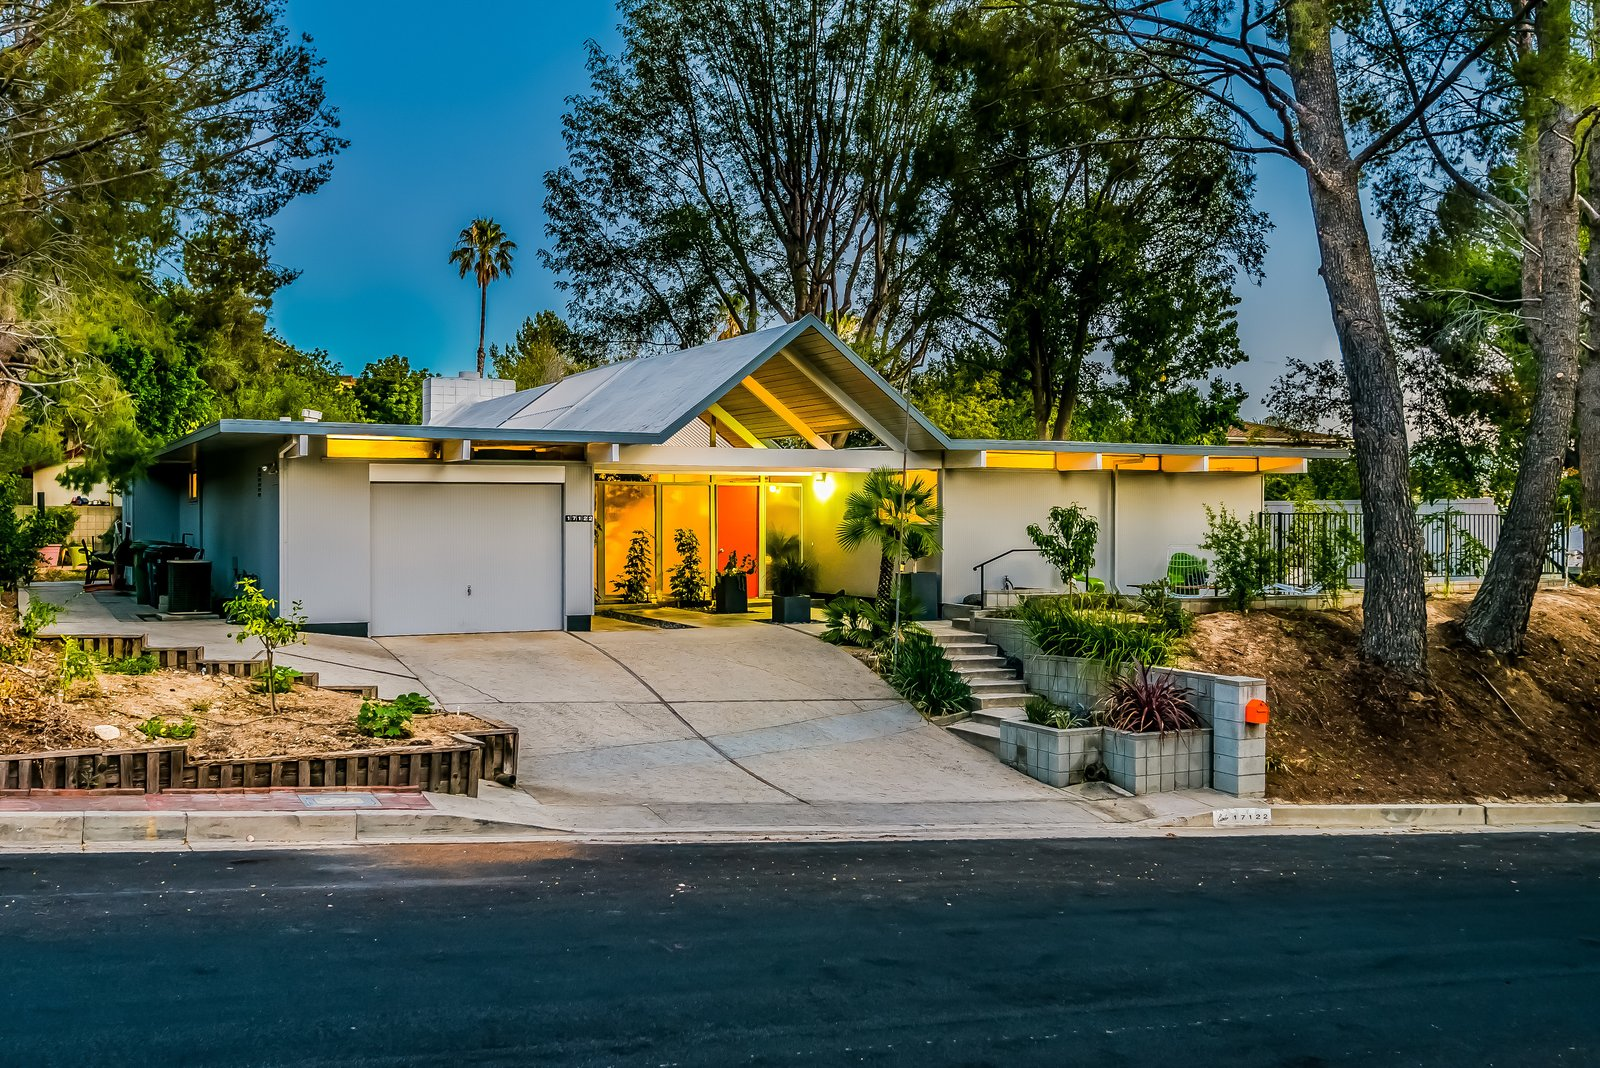 With Only One Previous Set of Owners, a Pristine Eichler Home Asks $799K - Photo 1 of 13